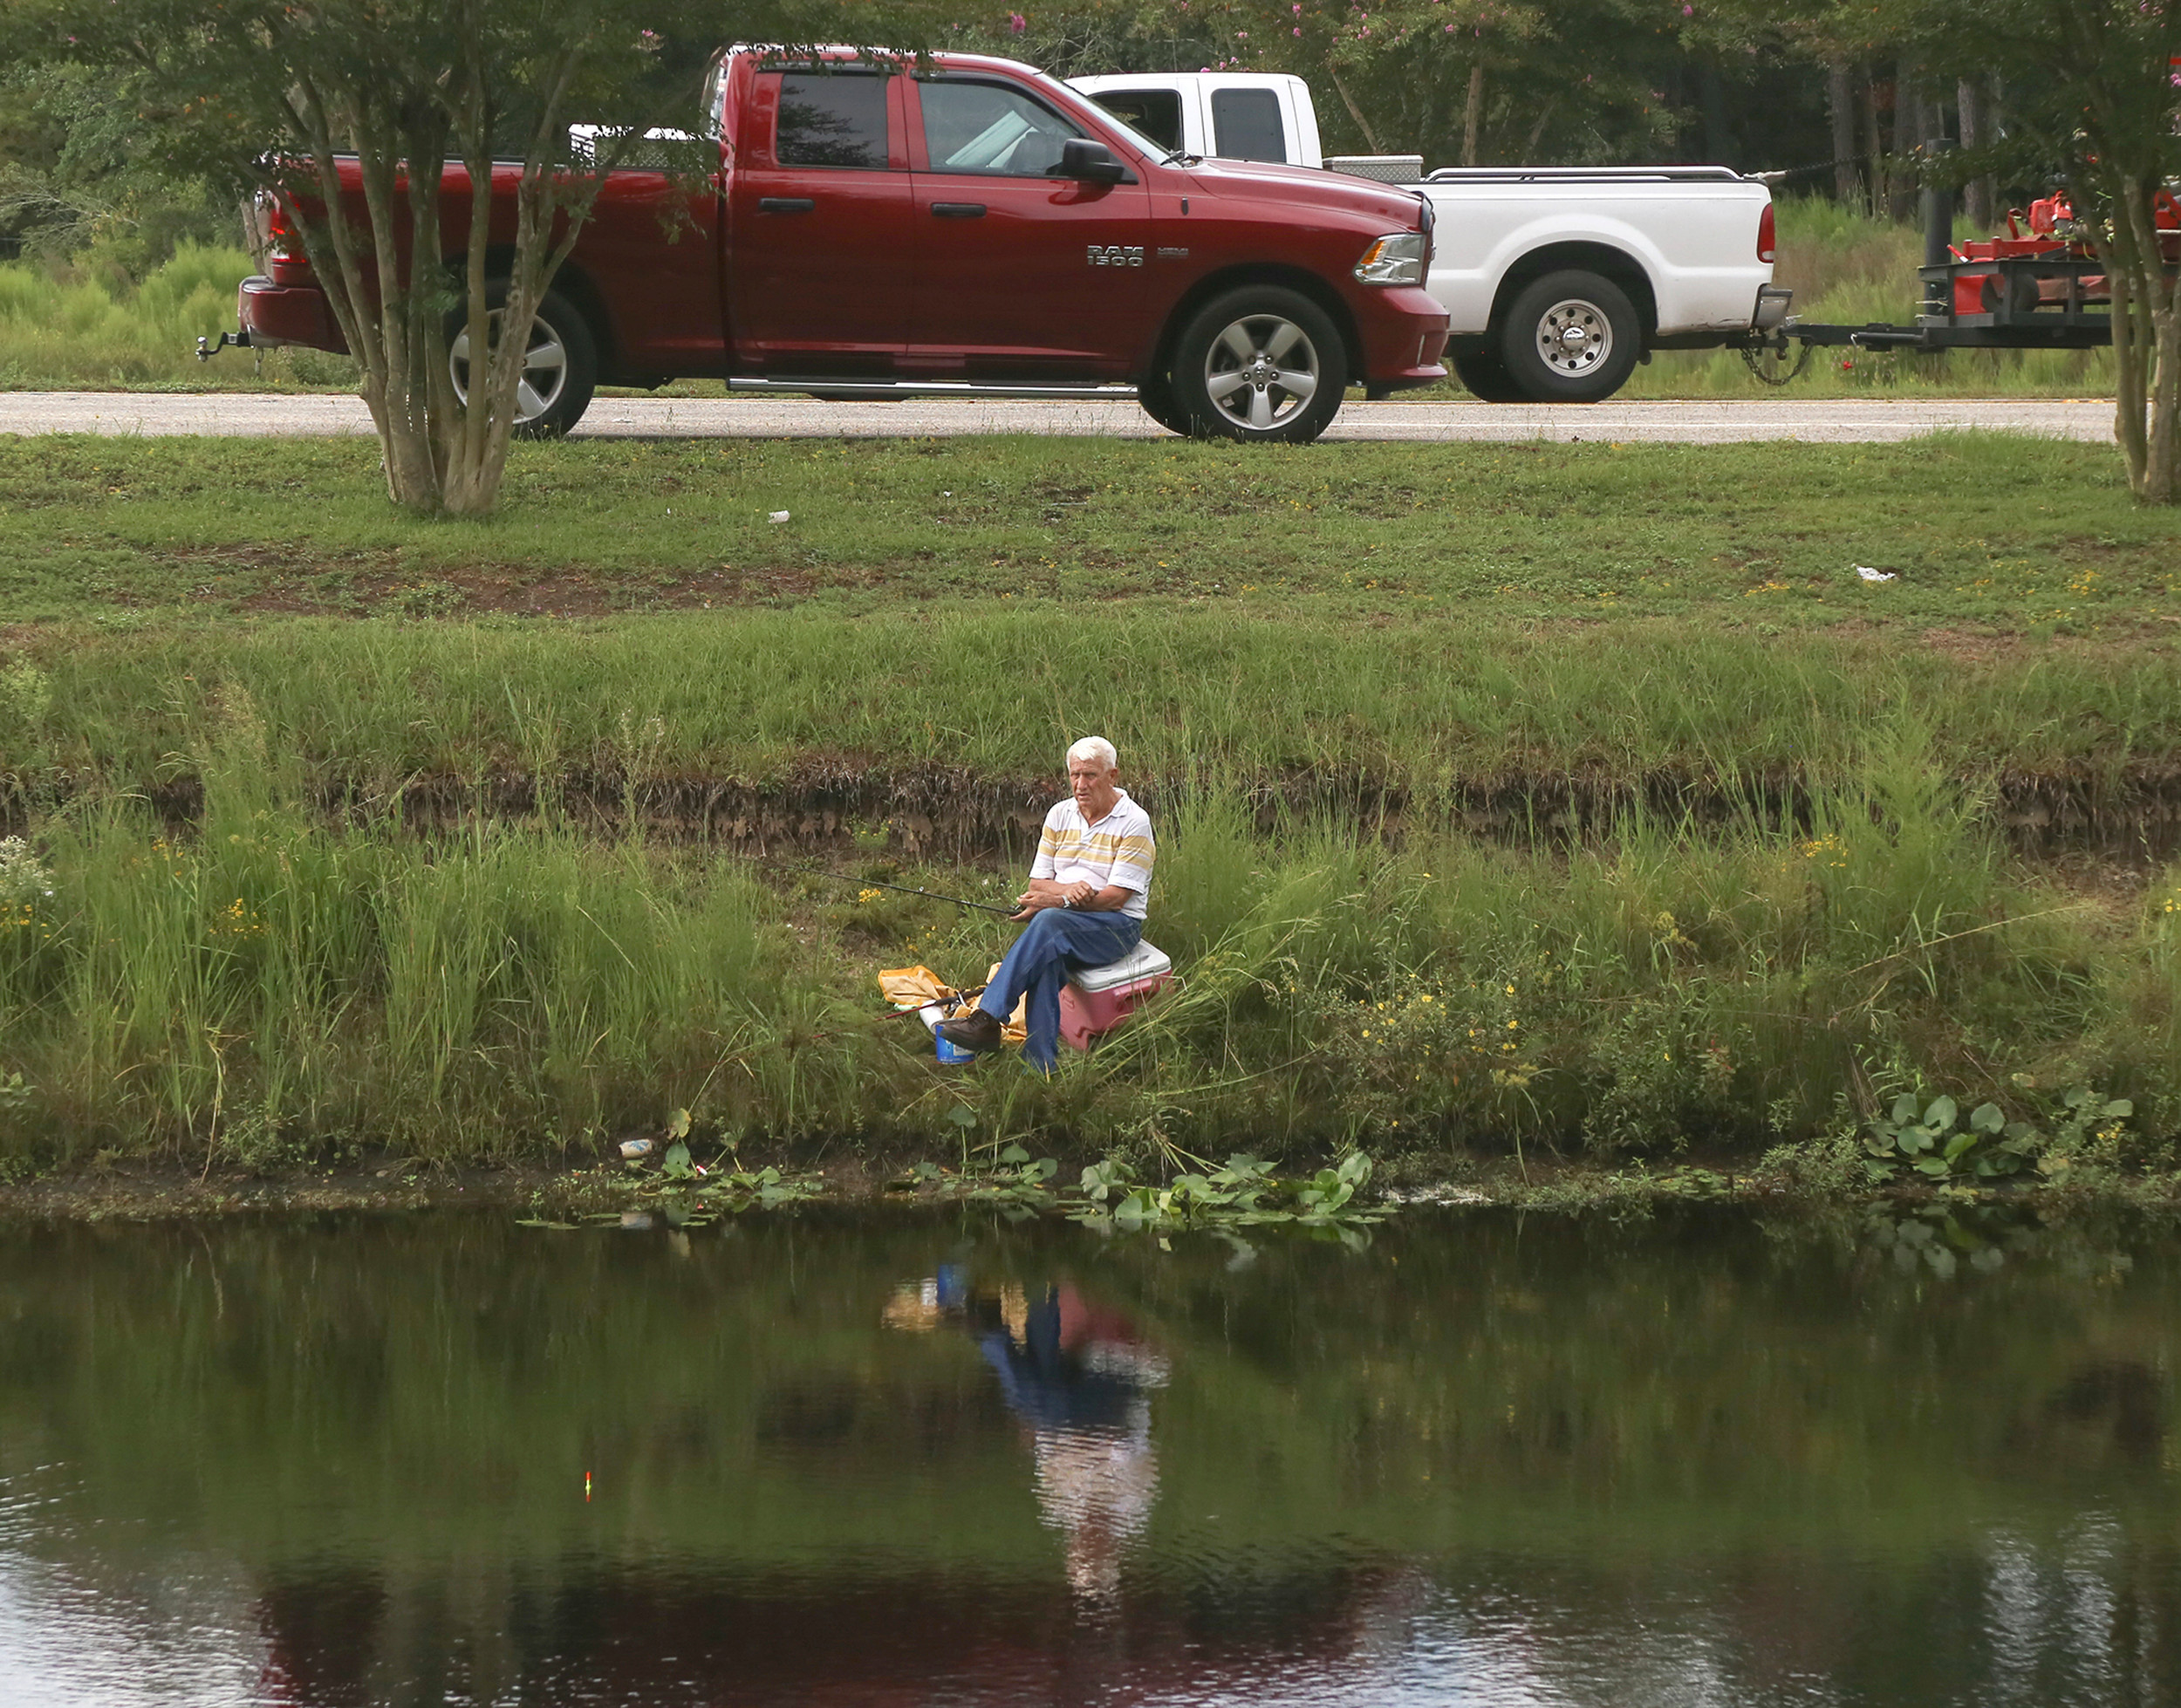 SUMTER ITEM FILE PHOTOA man enjoys an afternoon fishing on Second Mill Pond as traffic rushes by. County council passed an amendment to add the purchase of automated spillway gates for the dam at Second Mill Pond.